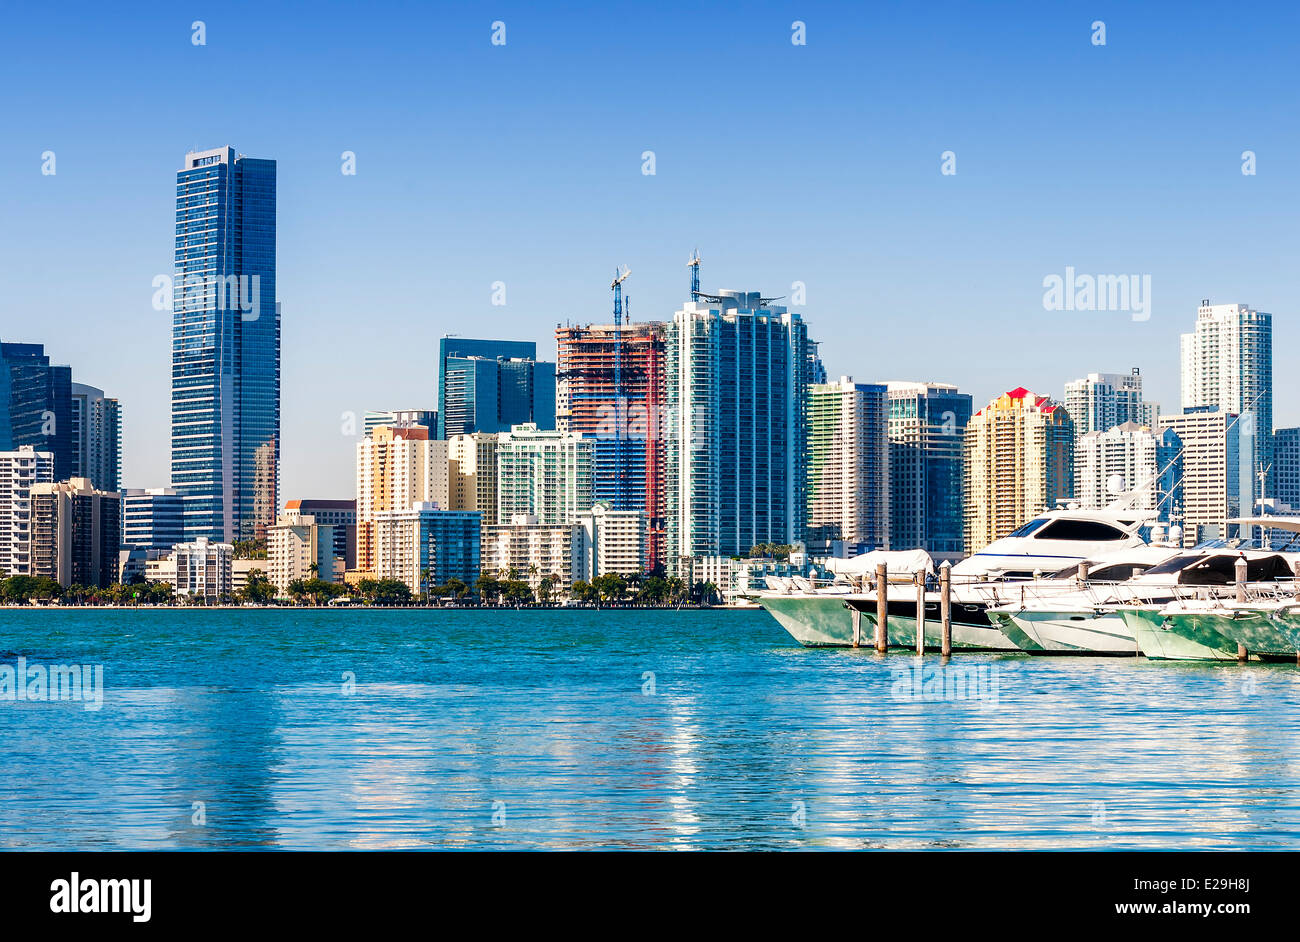 Miami south beach, view from port entry channel, Floride, USA. - Stock Image